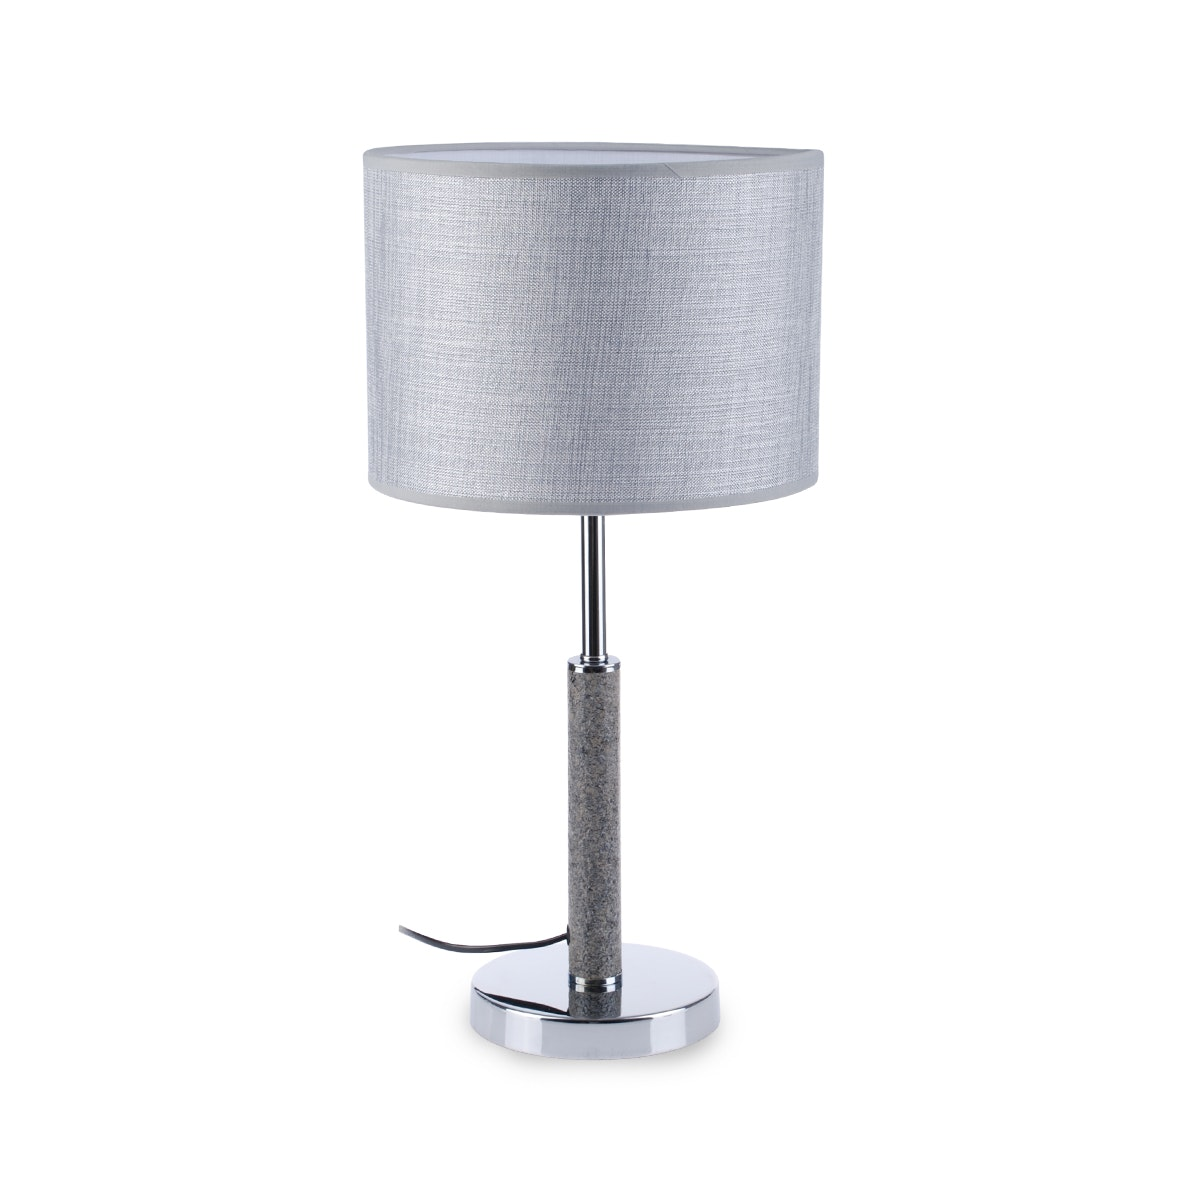 3+Projects Lampu Meja Table Lamp Grey Fabric Shade 3+DL-PD4033-GR-VG